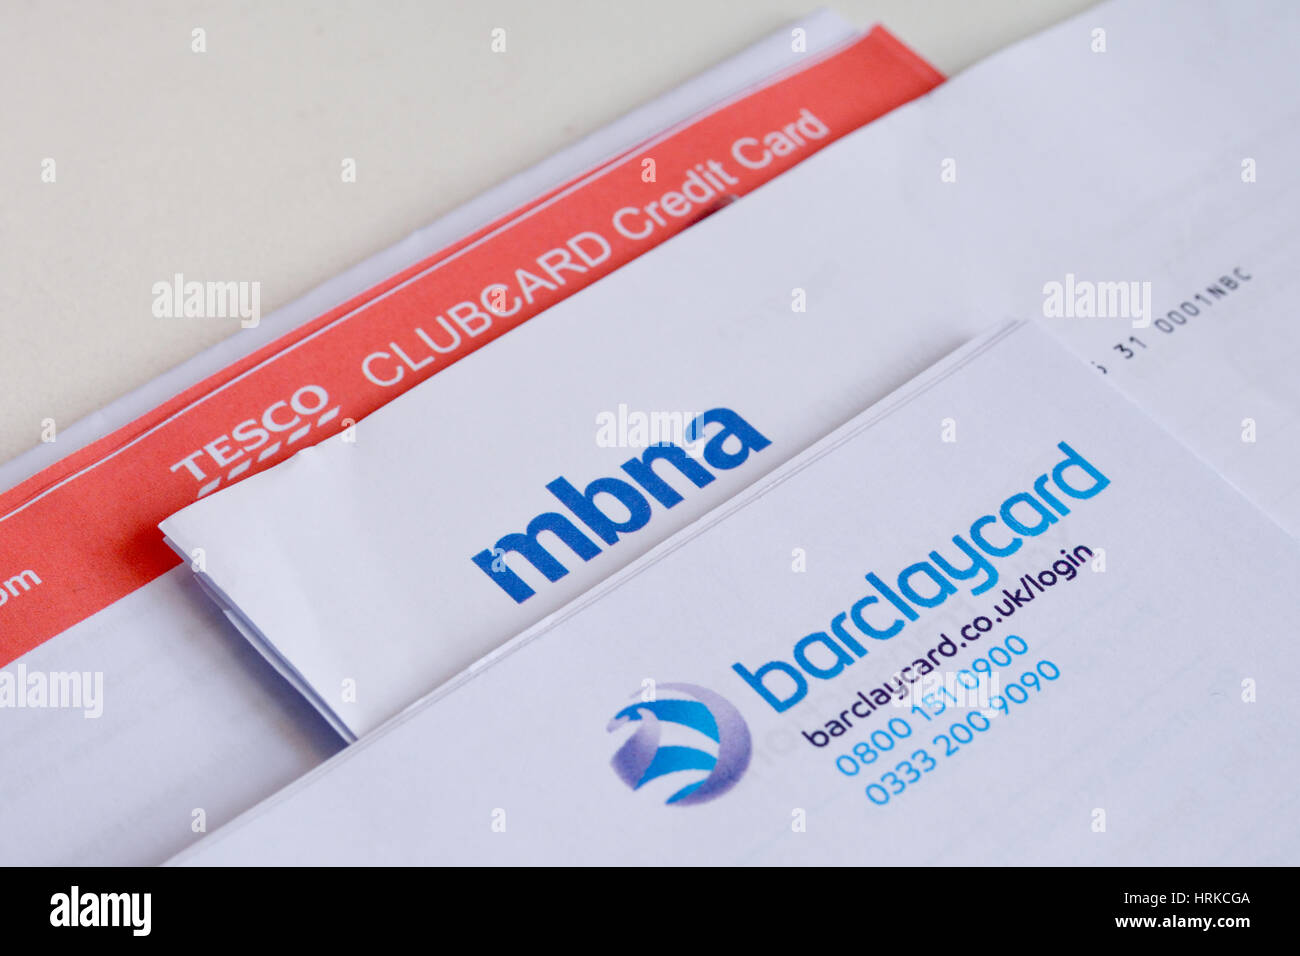 Tesco bank card stock photos tesco bank card stock images alamy stack of credit card statements including tesco bank barclaycard and mbna indicative of the reheart Images